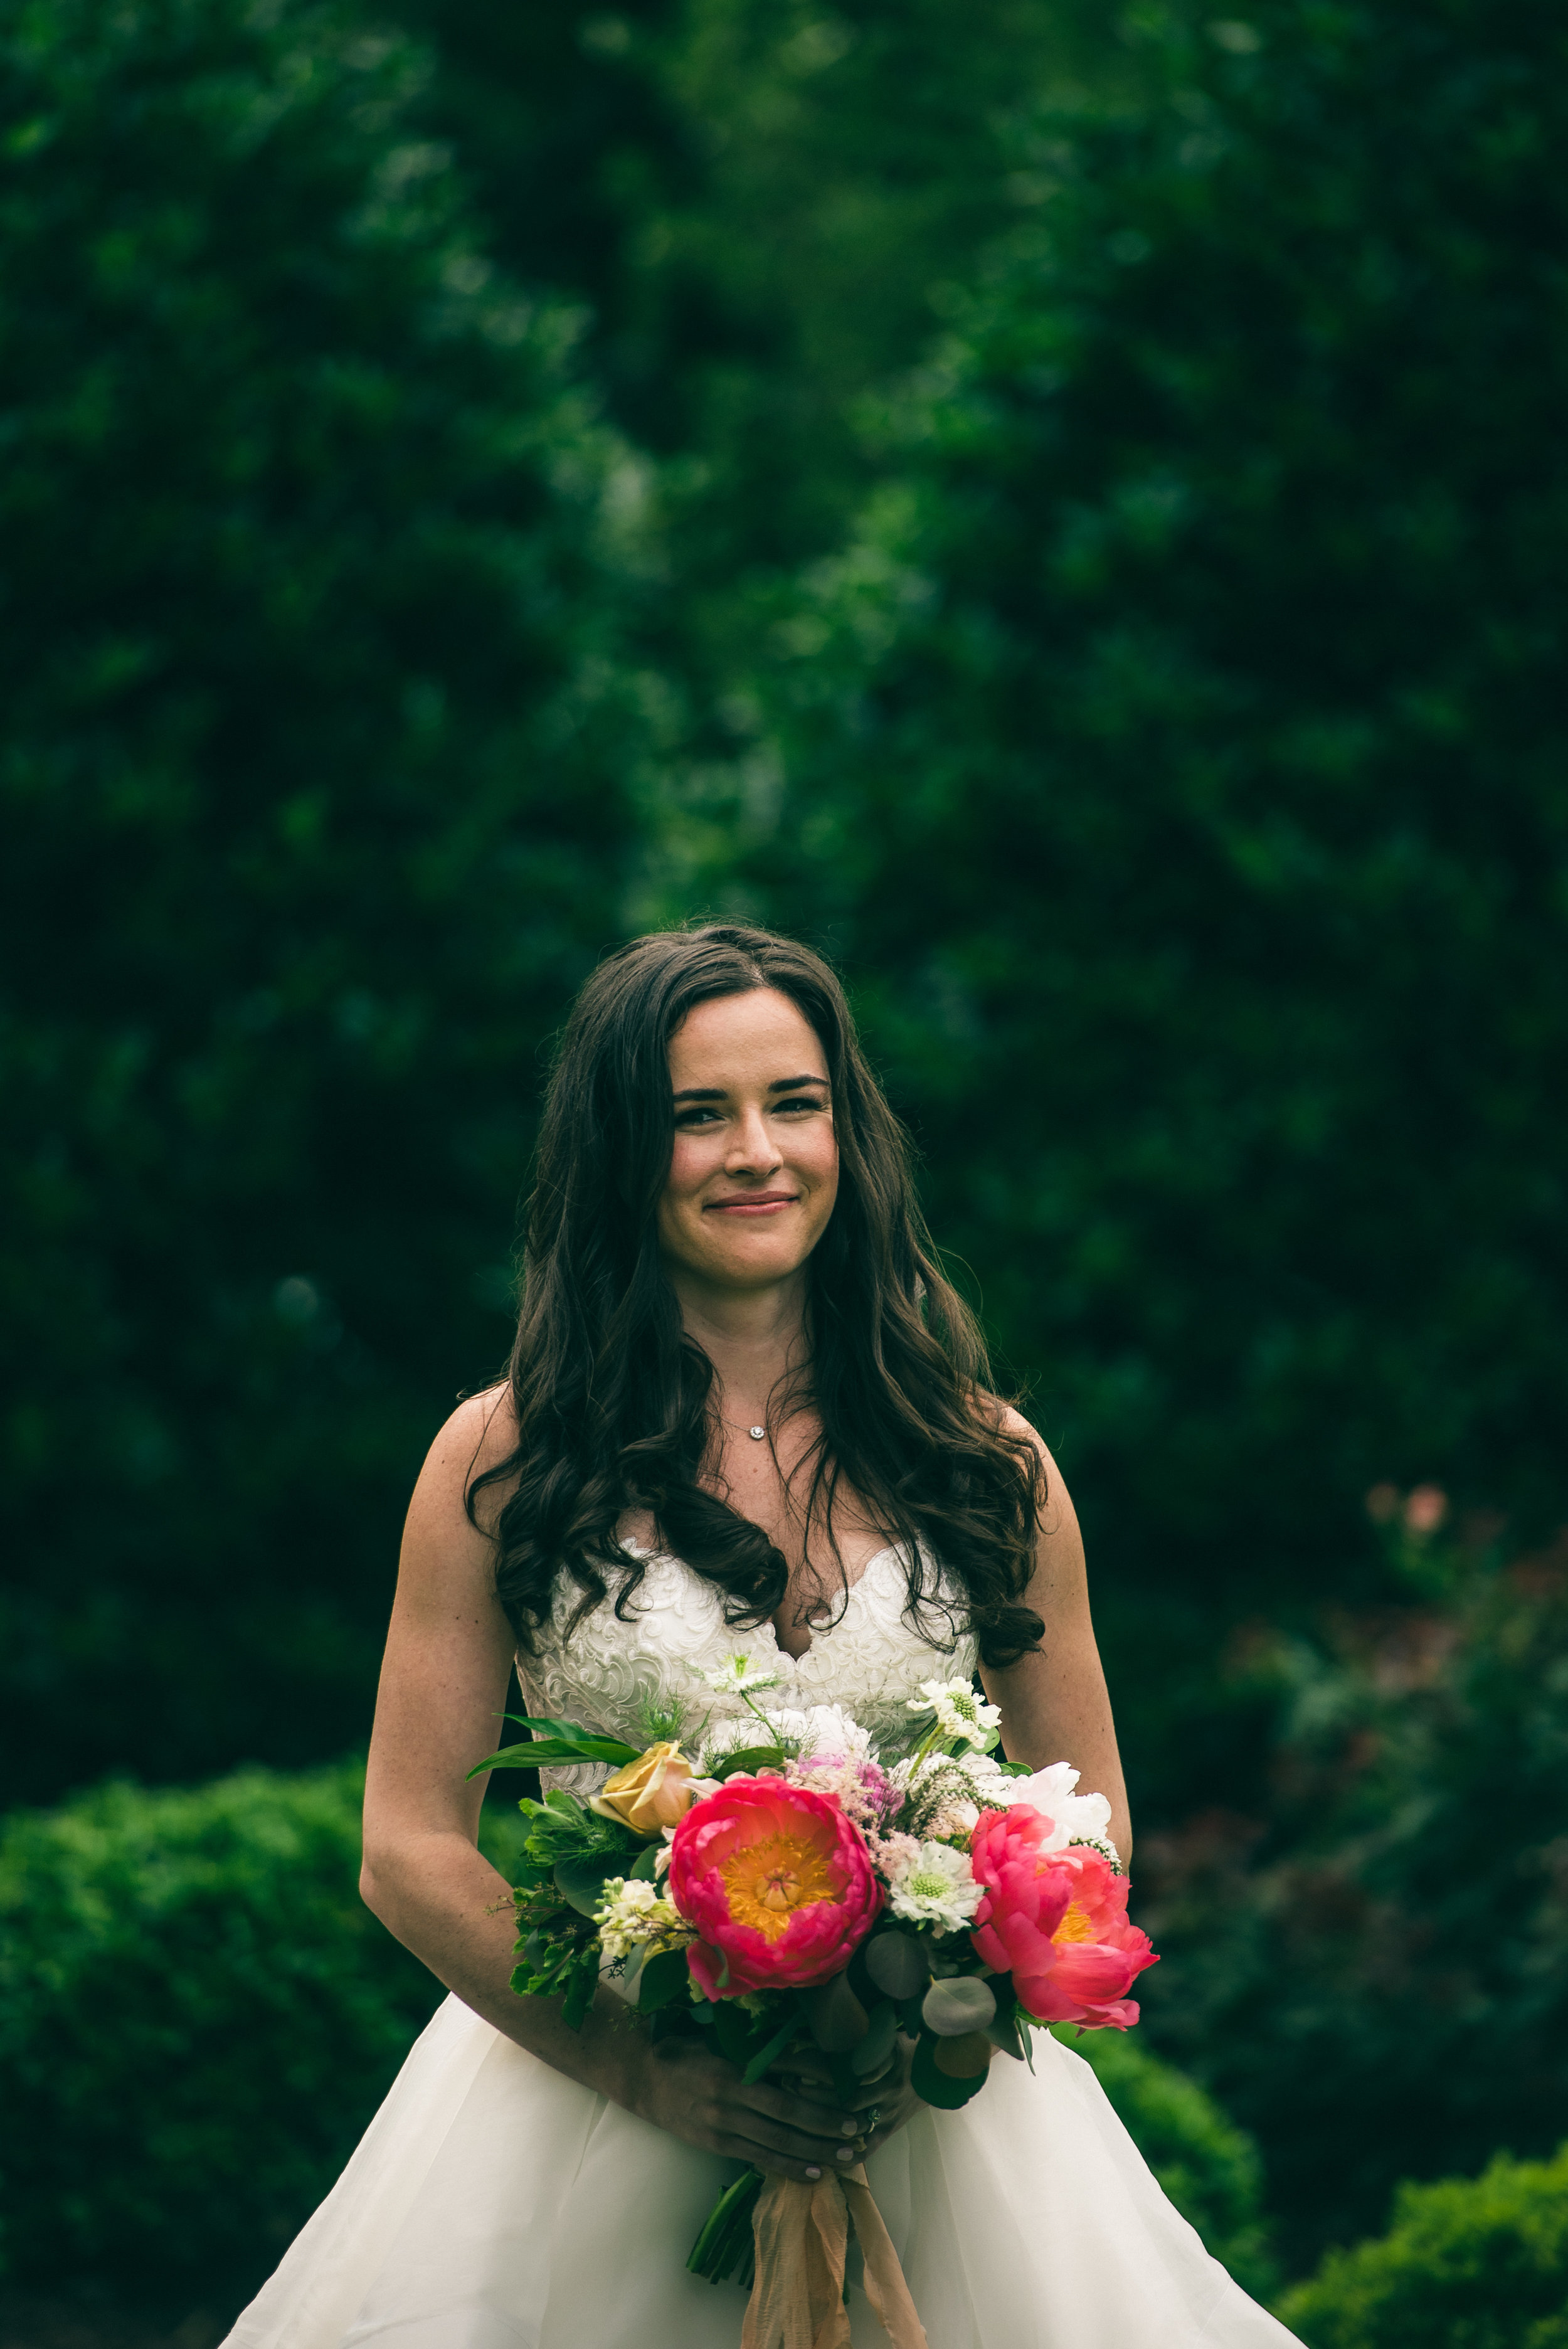 Vesic Photography - Bowerbird Flowers - summer wedding - bridal bouquet